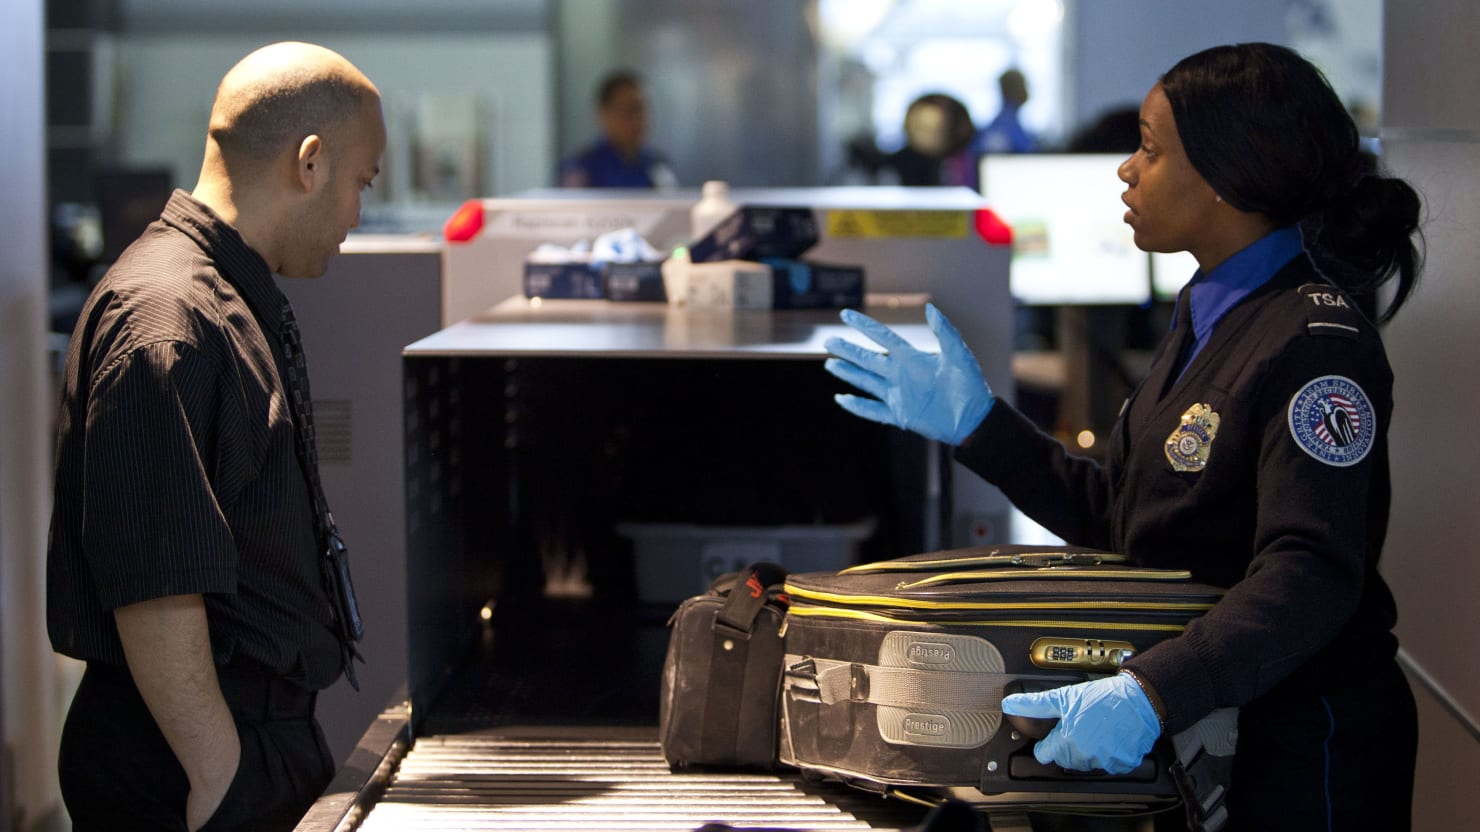 DHS Eyeing Loose Coins From TSA Checkpoints to Pay for Border Operations, Says Report